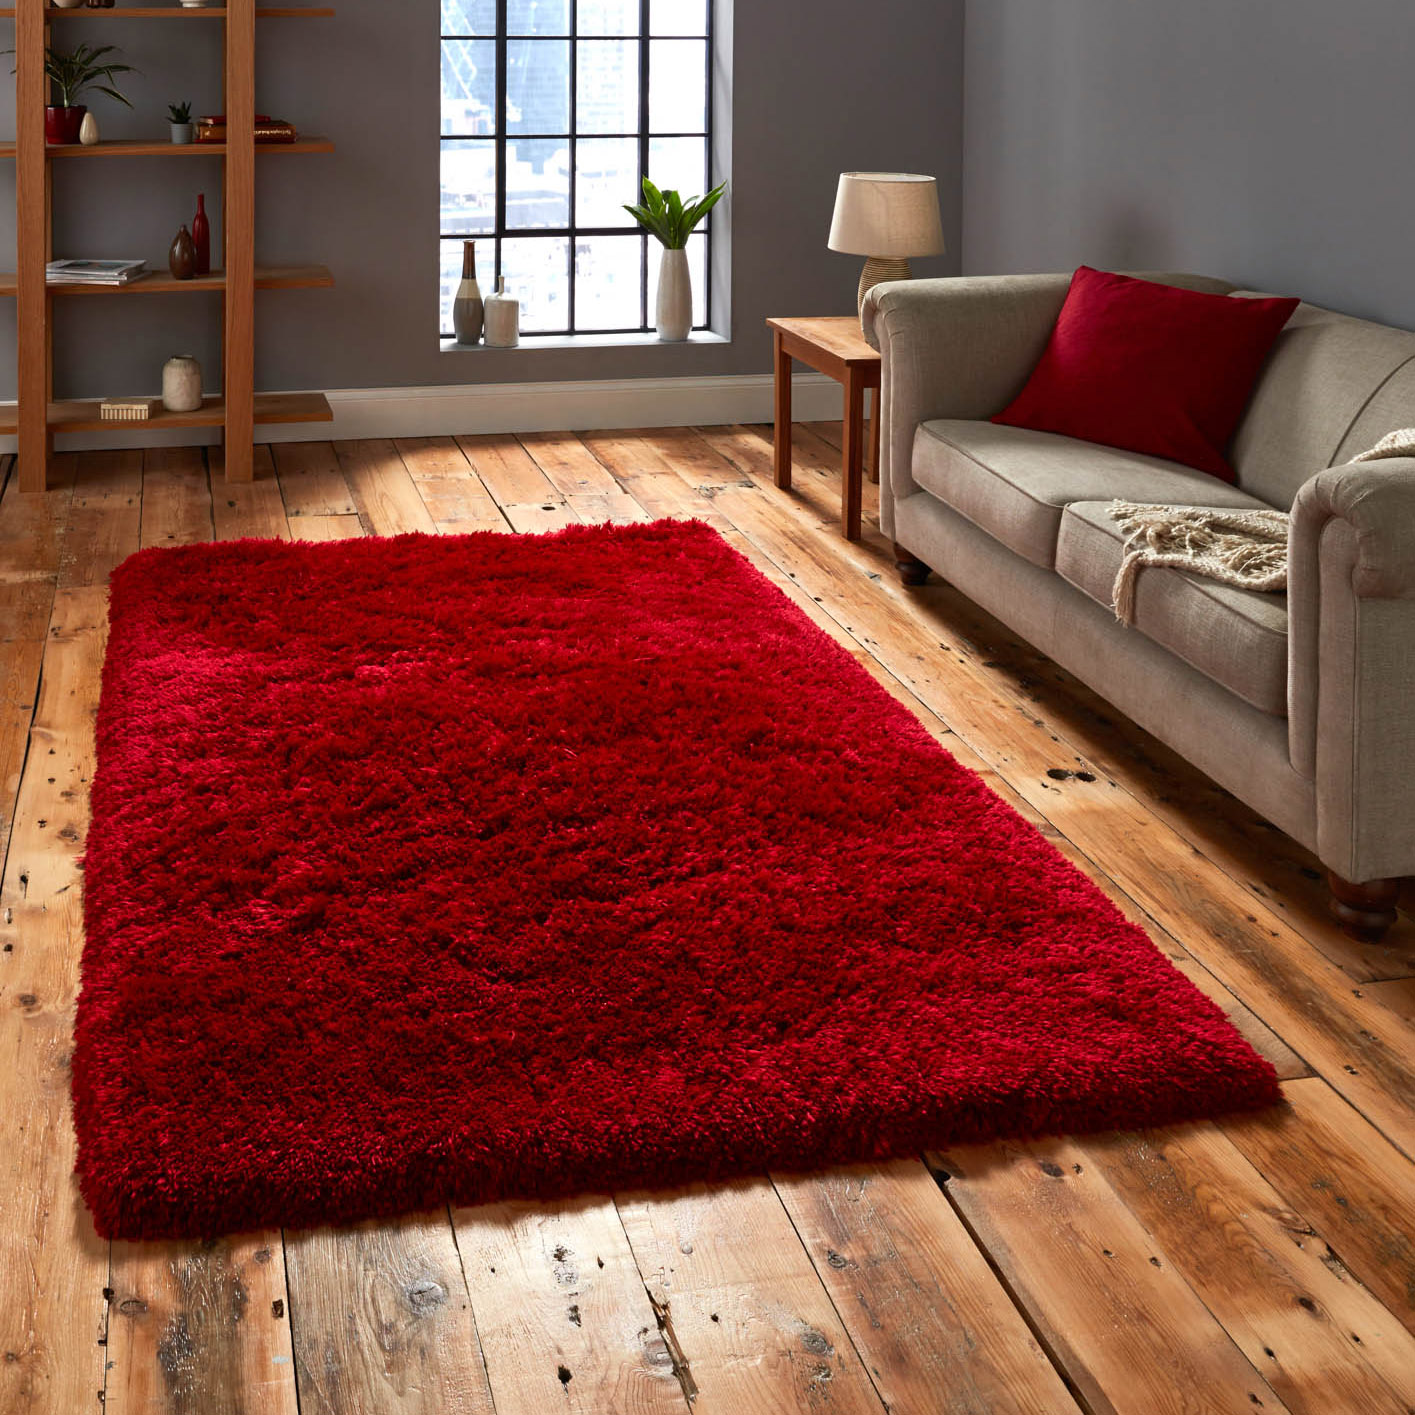 Yellow Shaggy Rug Uk: Polar PL95 Shaggy Rugs In Red